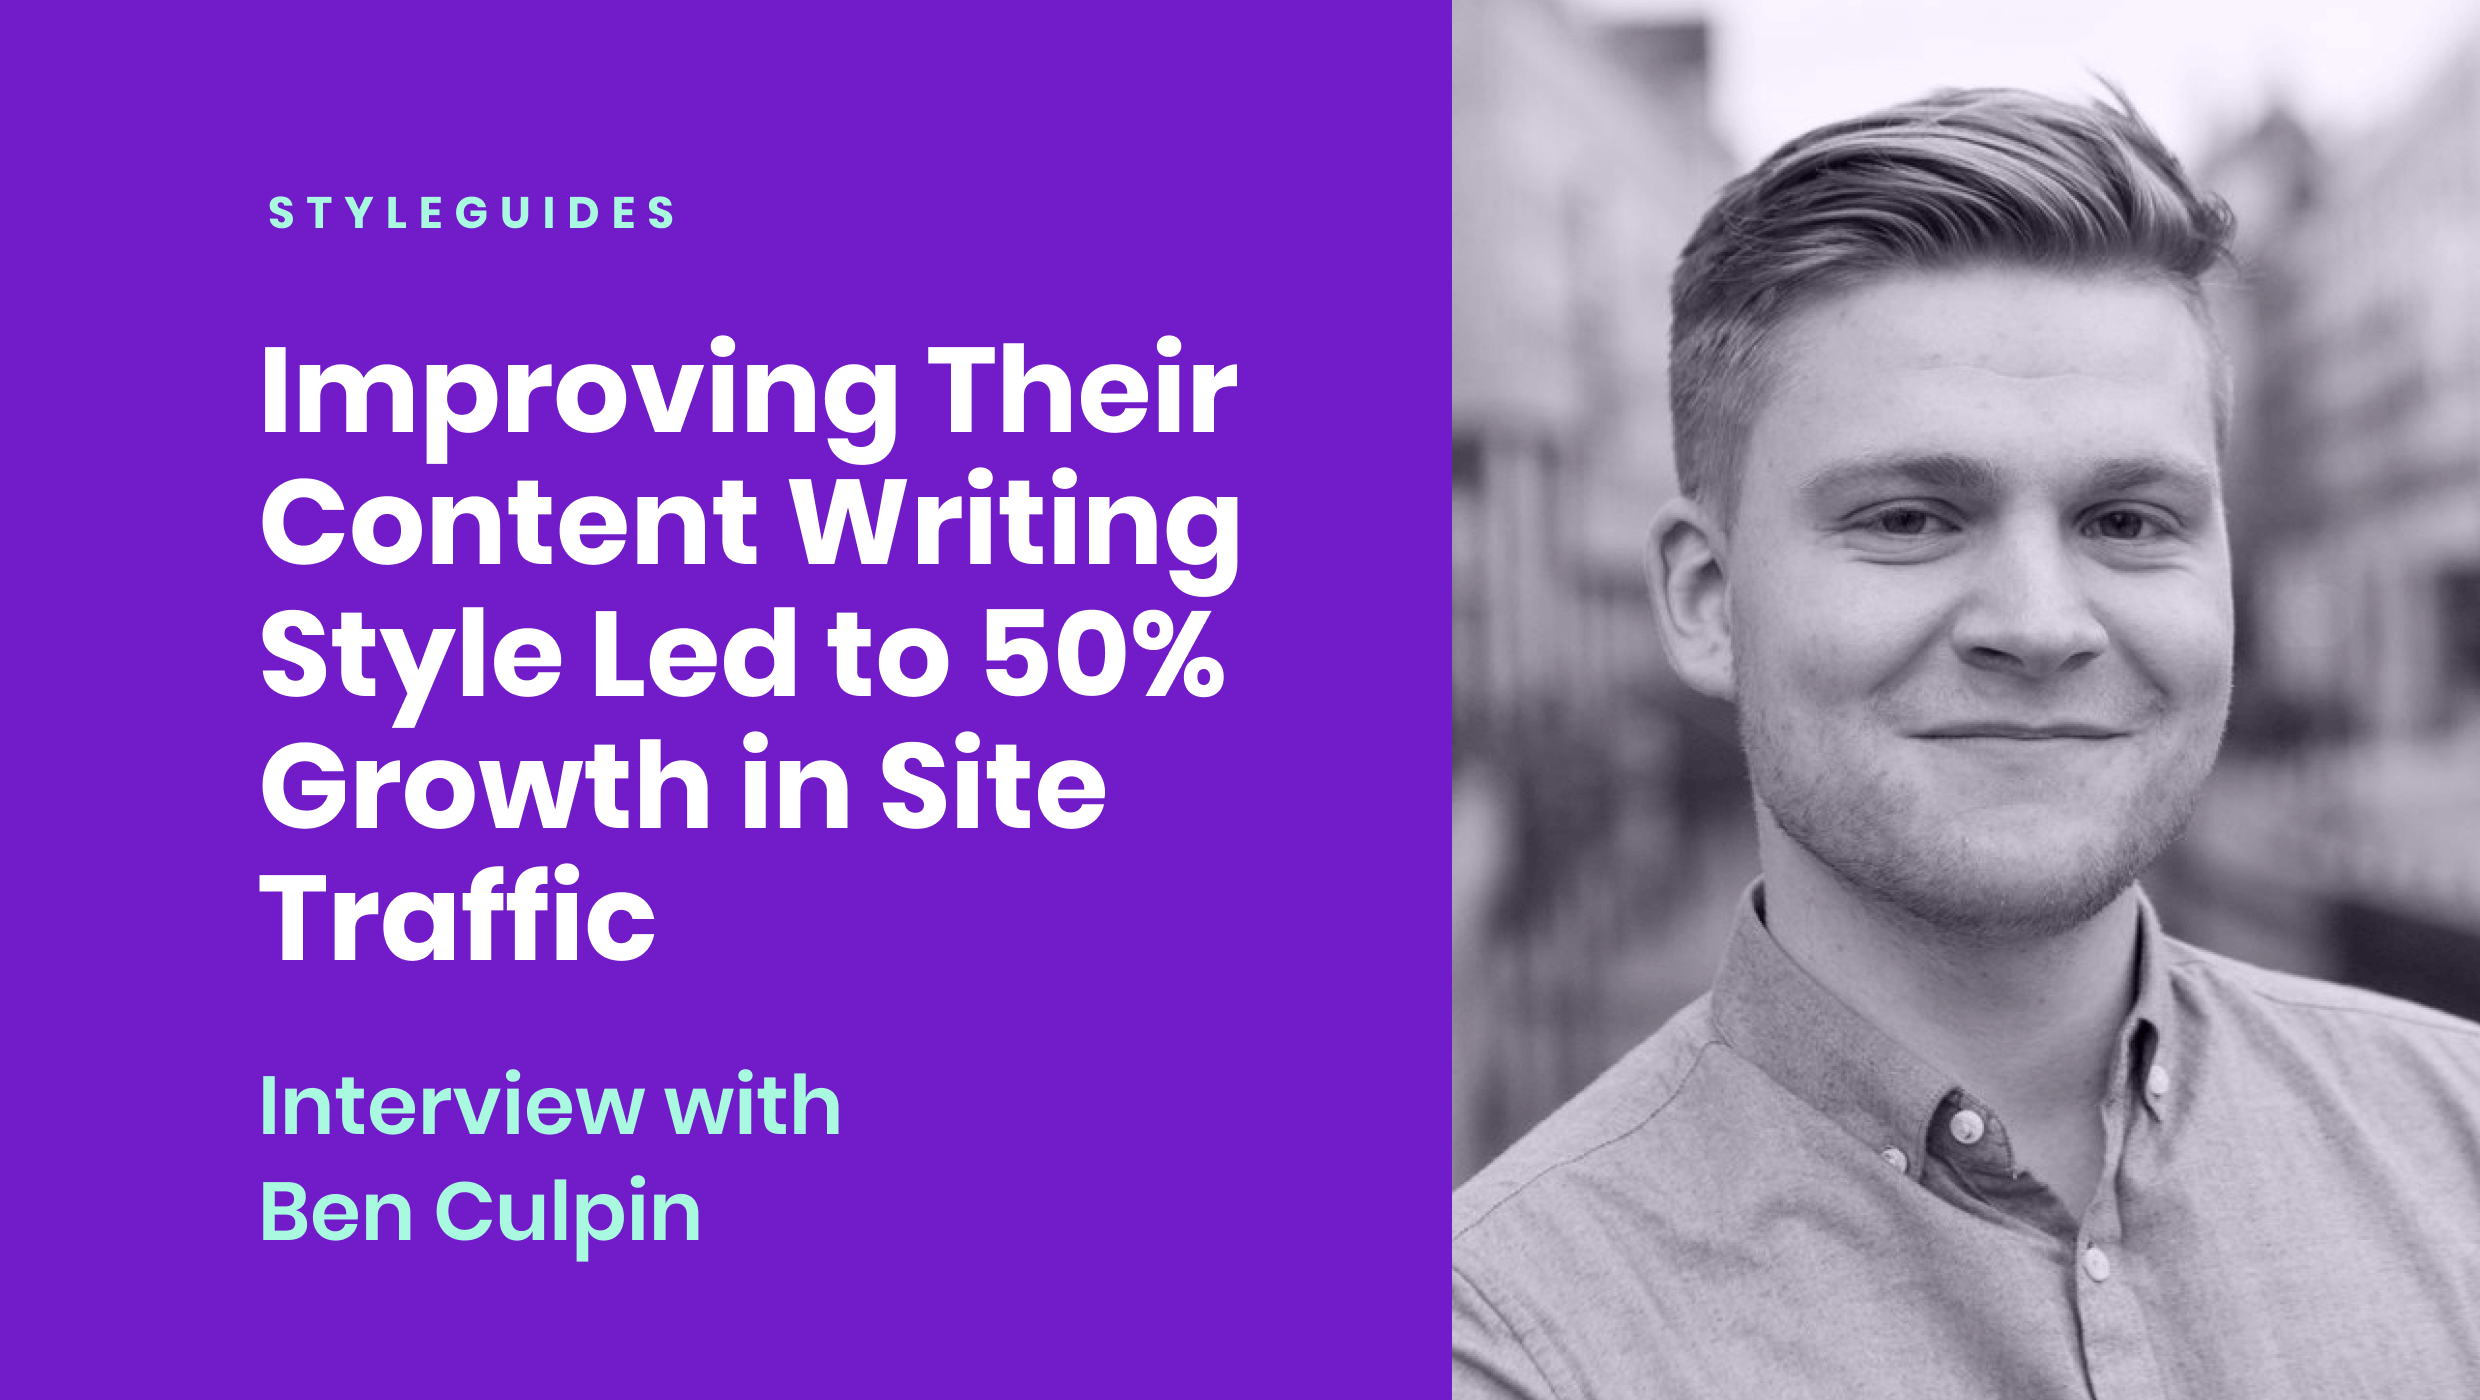 Improving their content writing style led to 50% growth in site traffic: interview with Ben Culpin